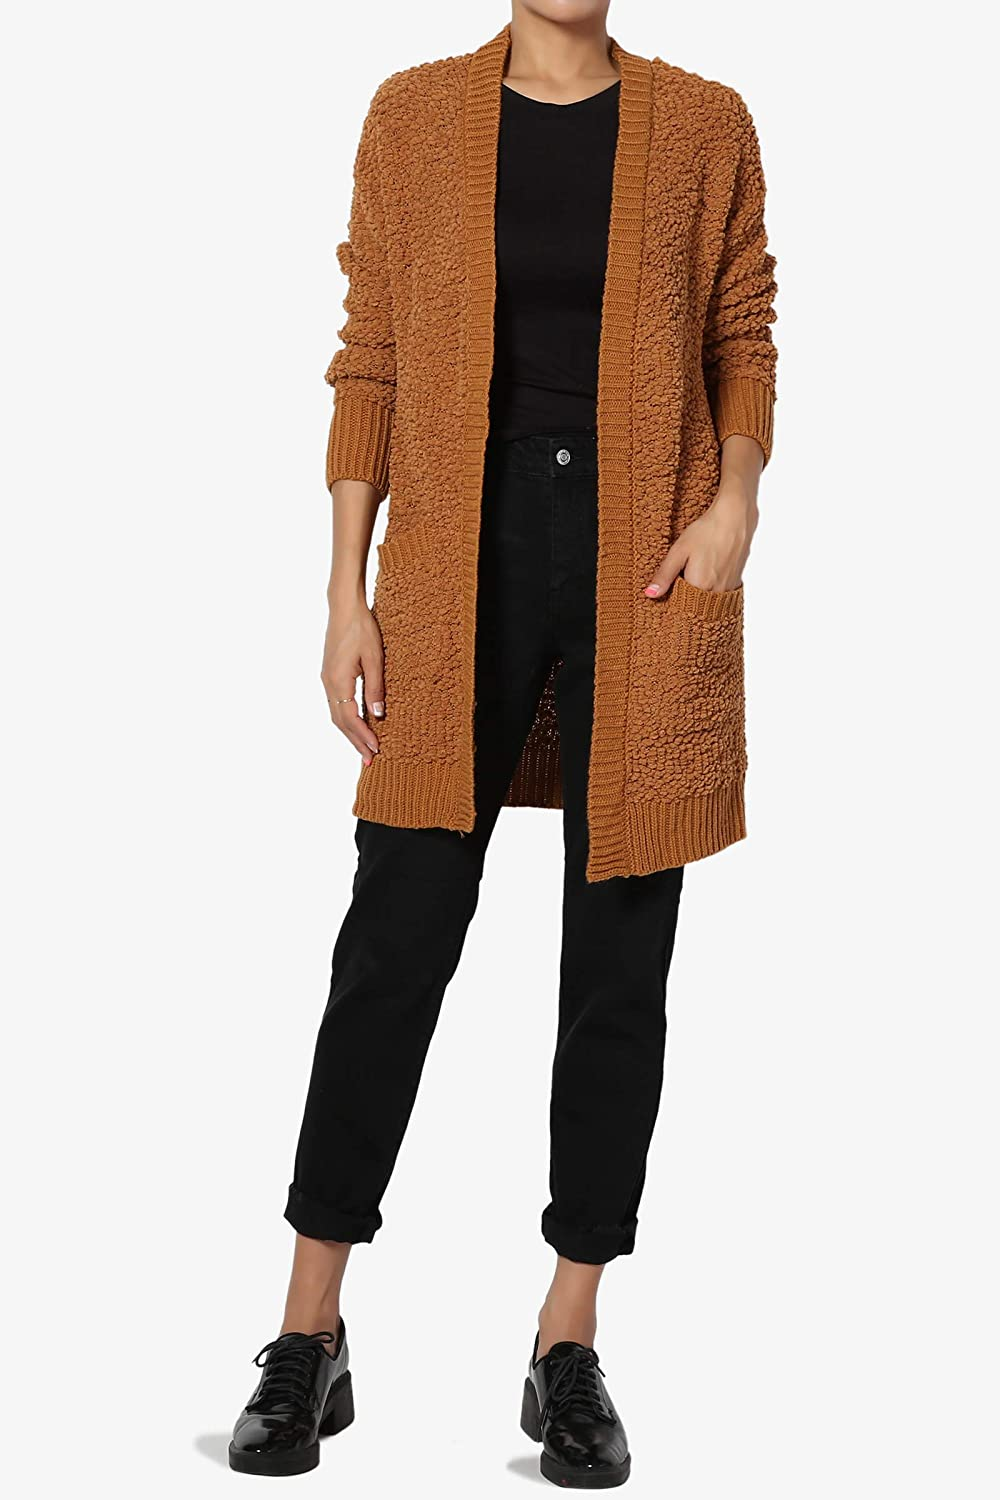 TheMogan S~3X Long Sleeve Pocket Open Front Knit Sweater Cardigan